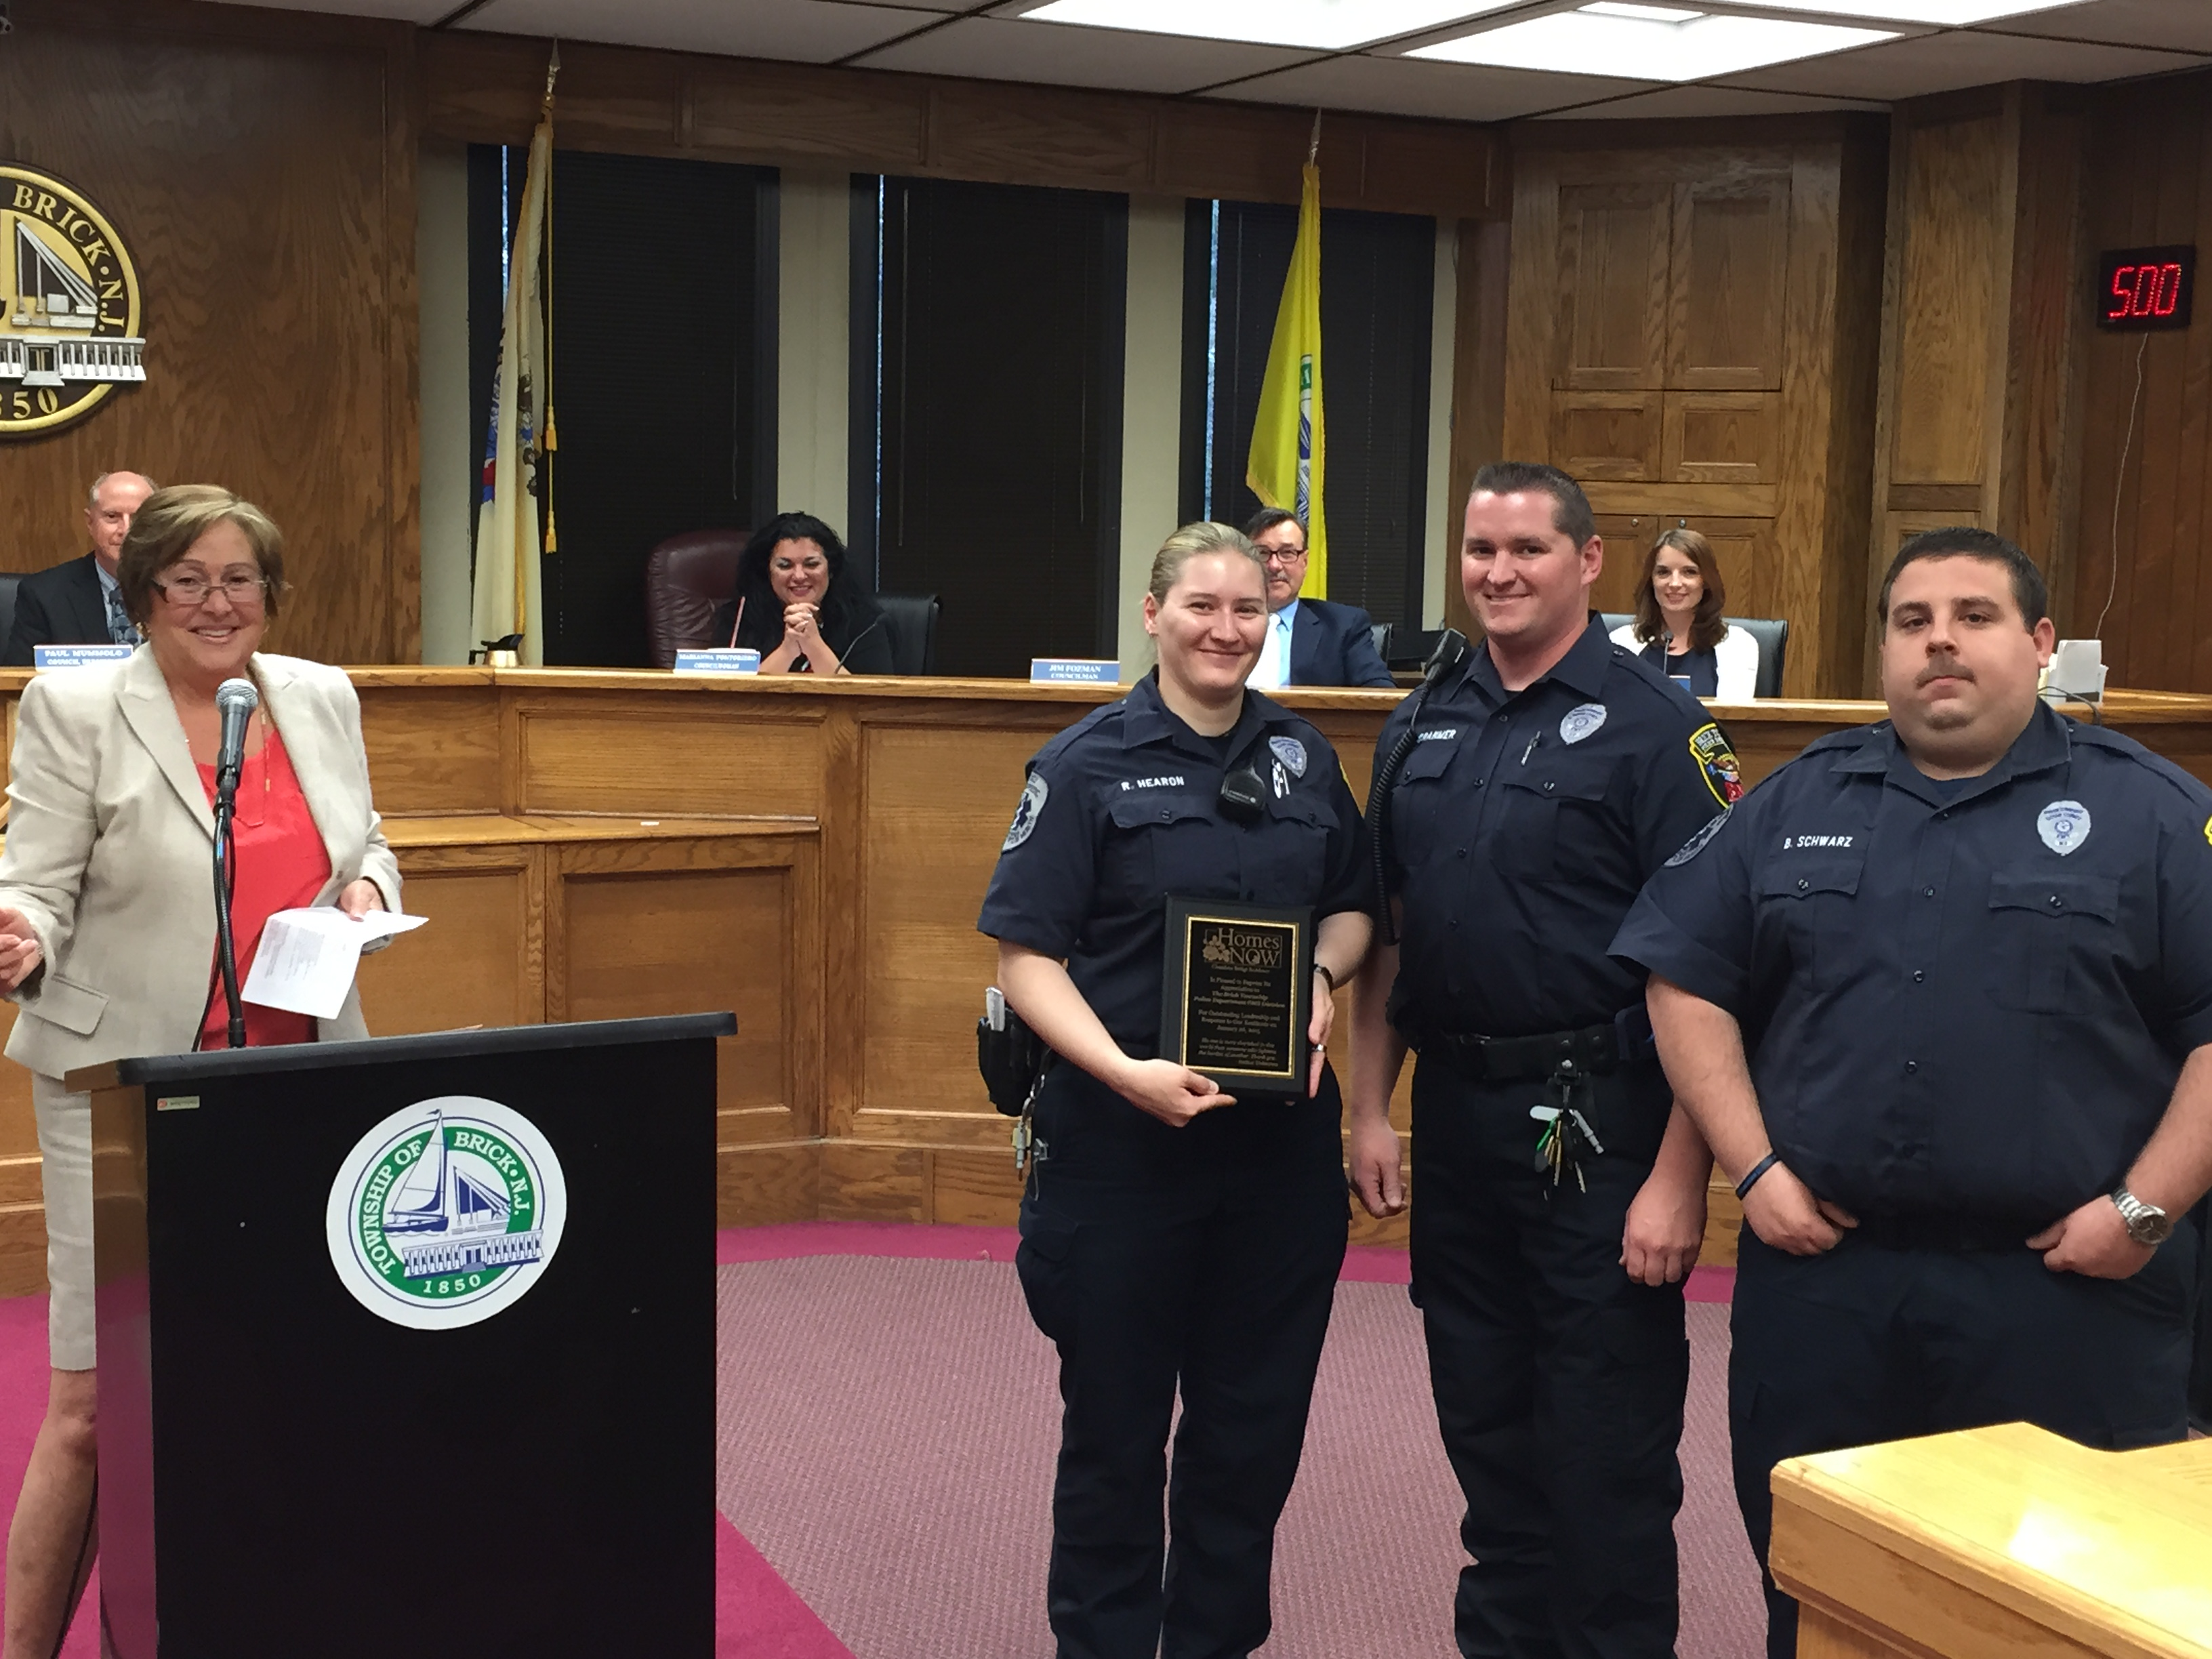 Brick Police EMTs recognized by Carol Wolfe for their efforts in a Jan. 2015 apartment fire. (Photo: Daniel Nee)